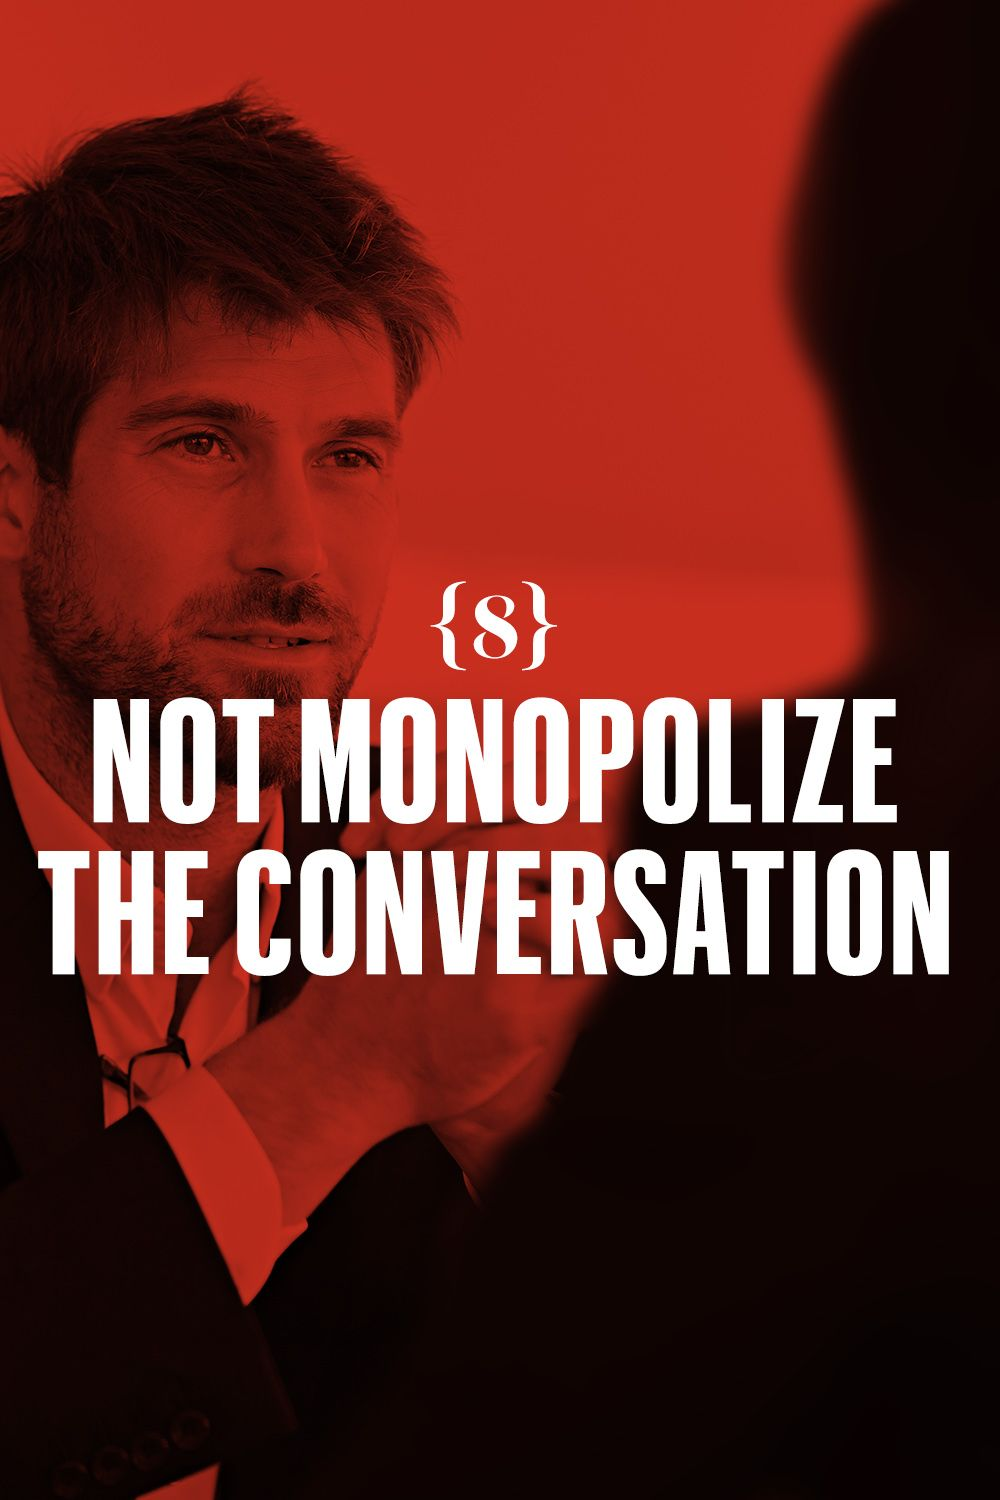 <p>Not monopolize the conversation.</p>